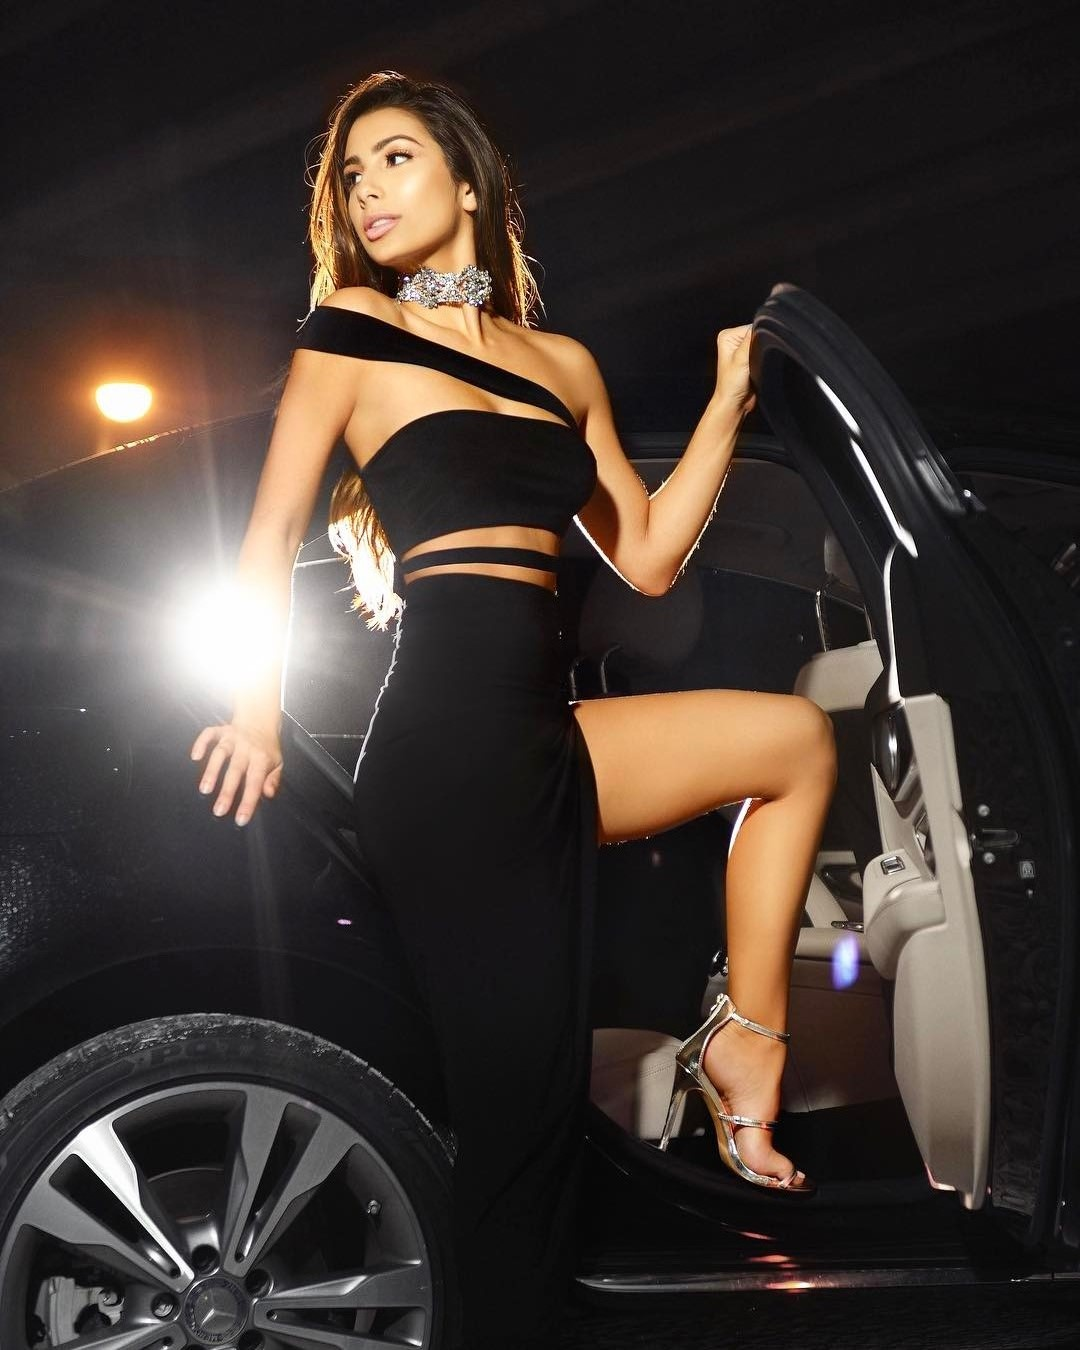 Elite escort services in Paris for events